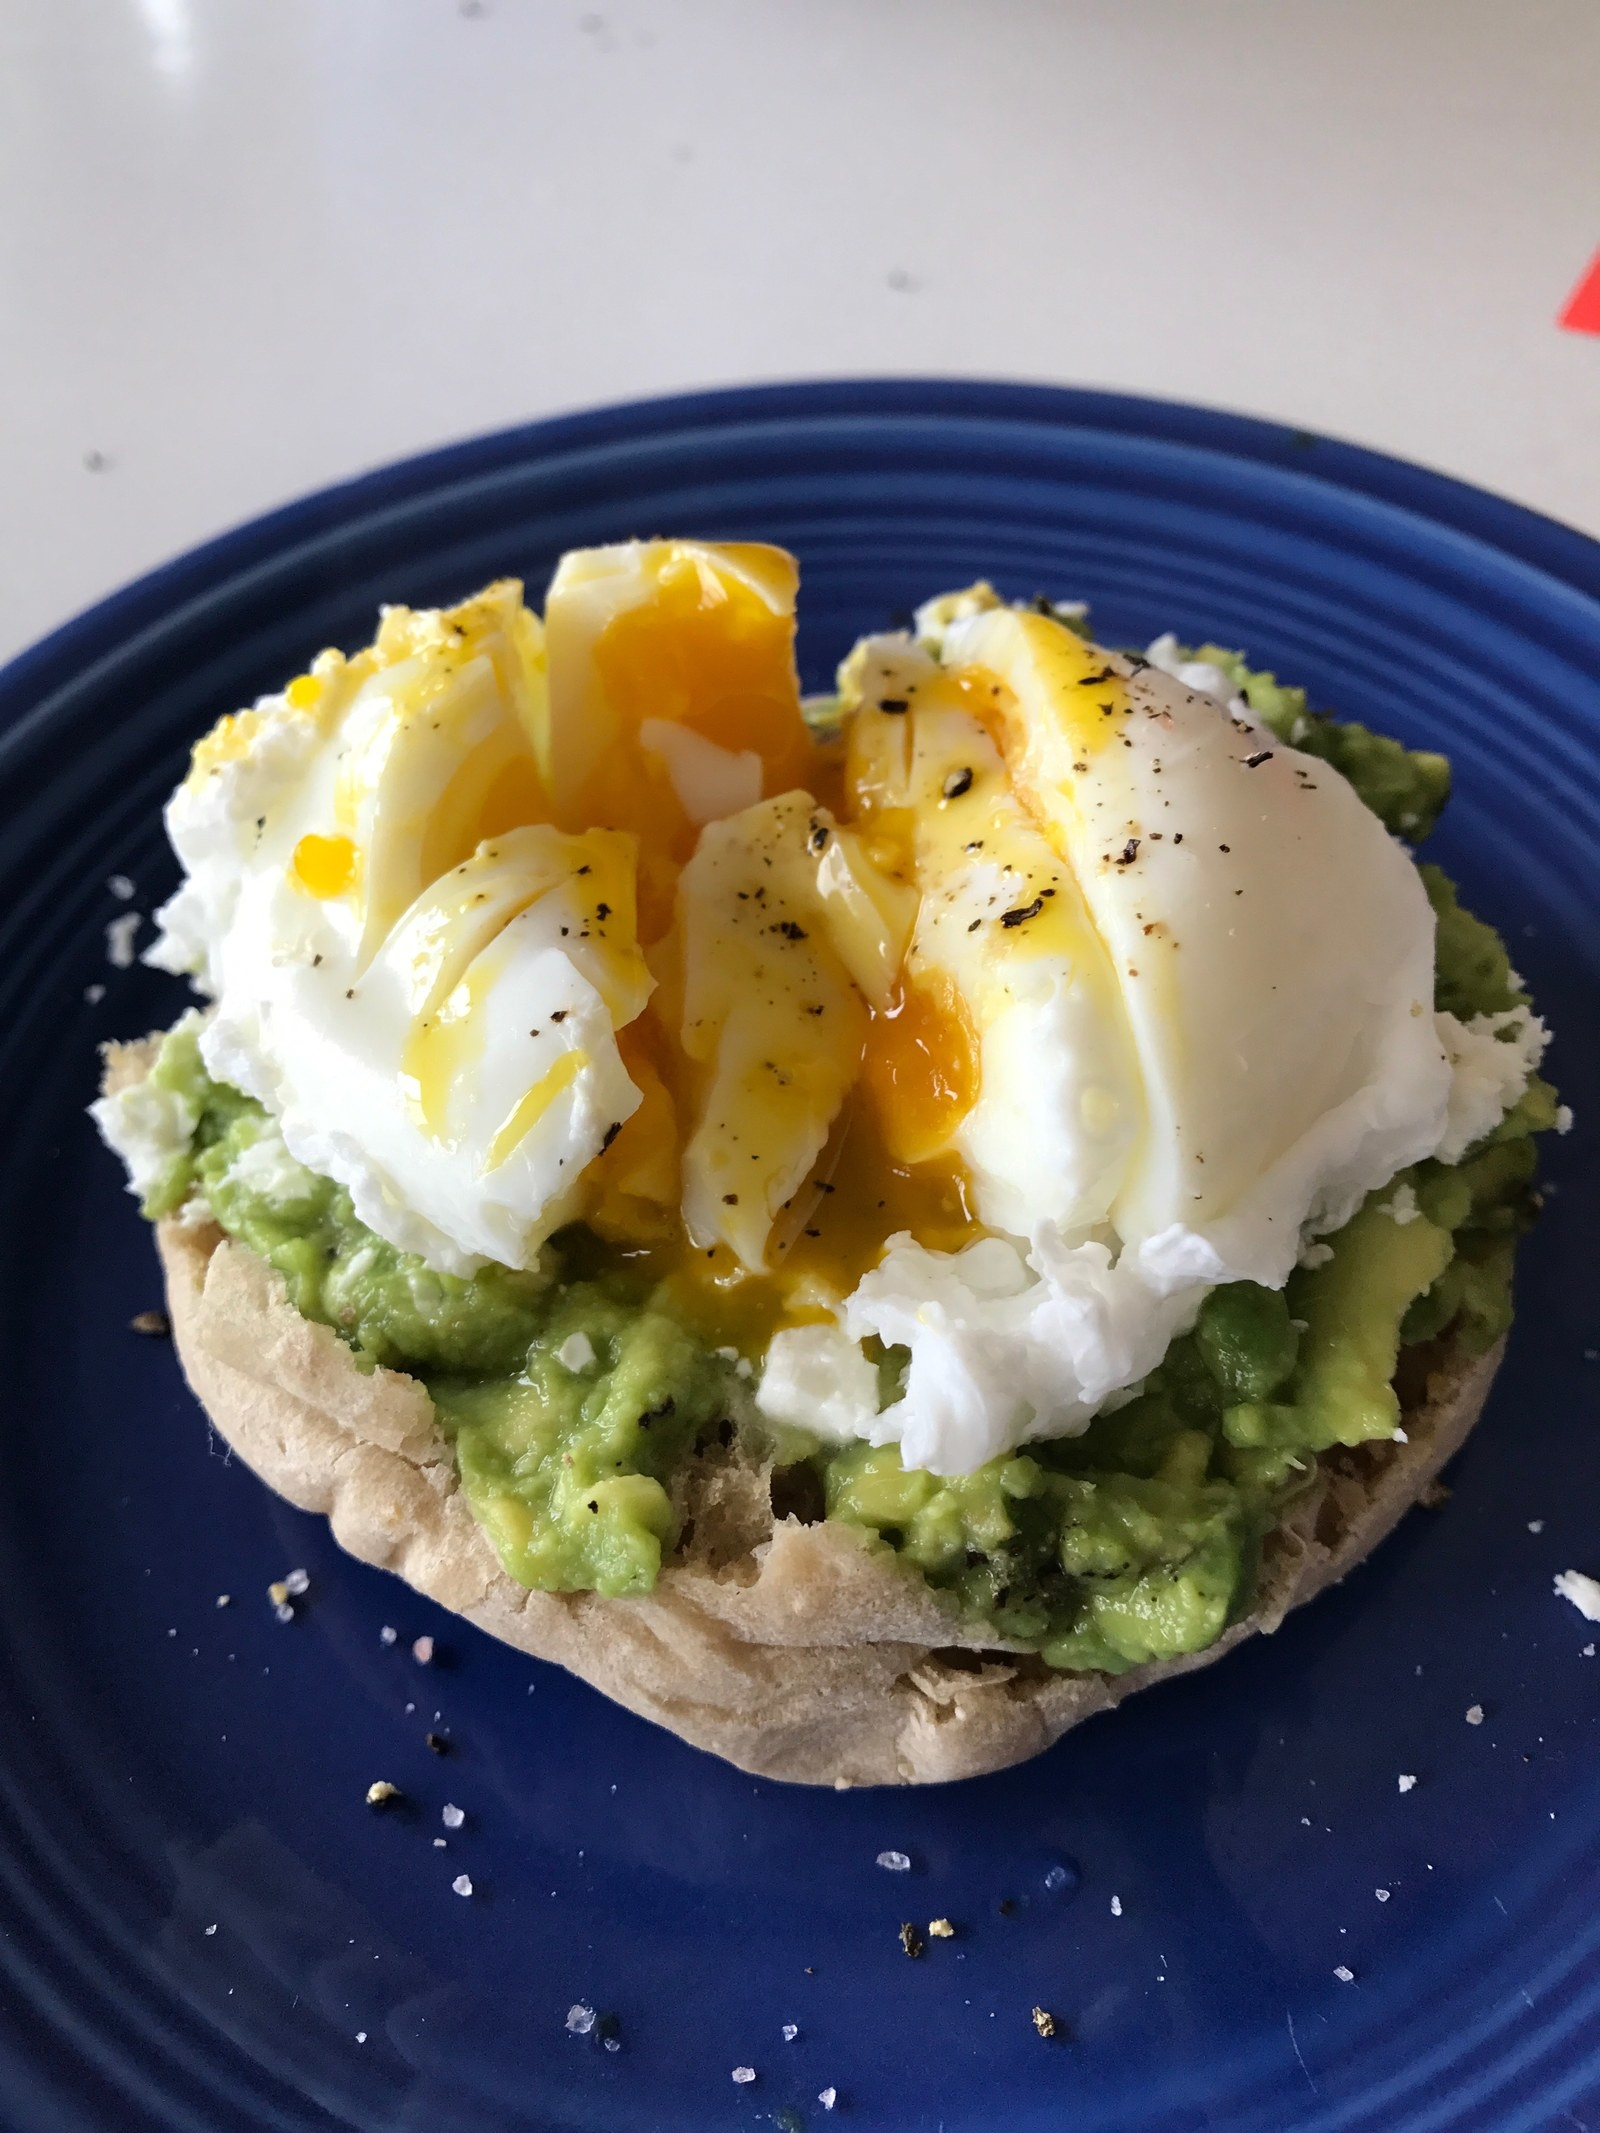 I Tried Plant-Based Eggs And Honestly, My Mind Is Sort Of Blown